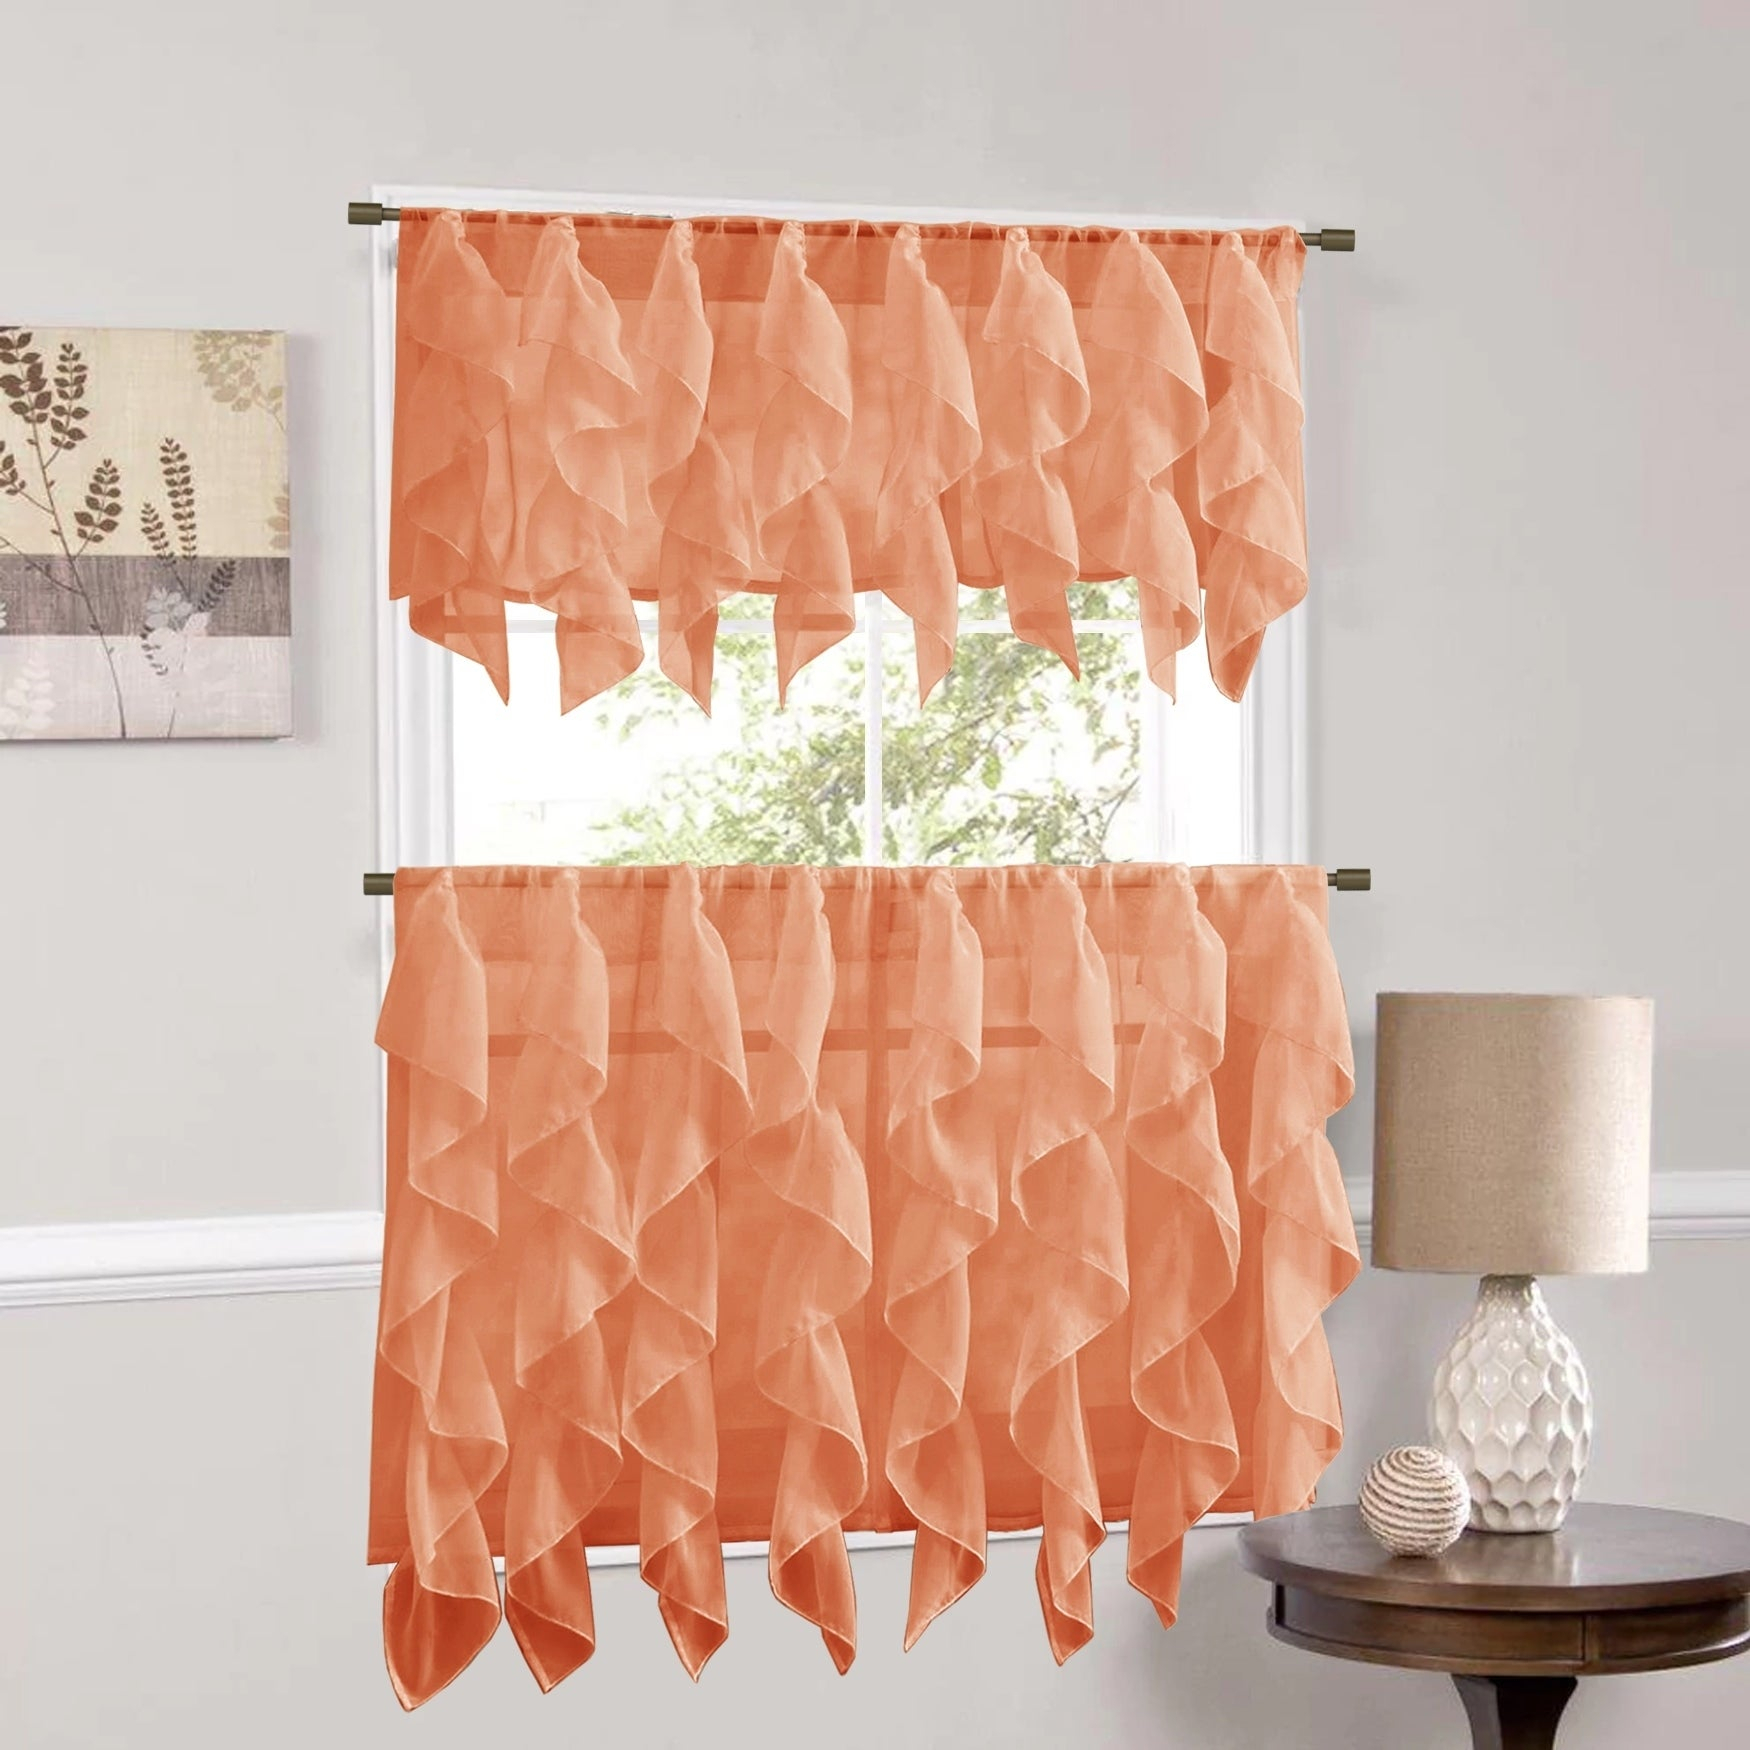 Sweet Home Collection Spice Vertical Ruffled Waterfall Valance And Curtain Tiers Pertaining To Silver Vertical Ruffled Waterfall Valance And Curtain Tiers (View 6 of 20)